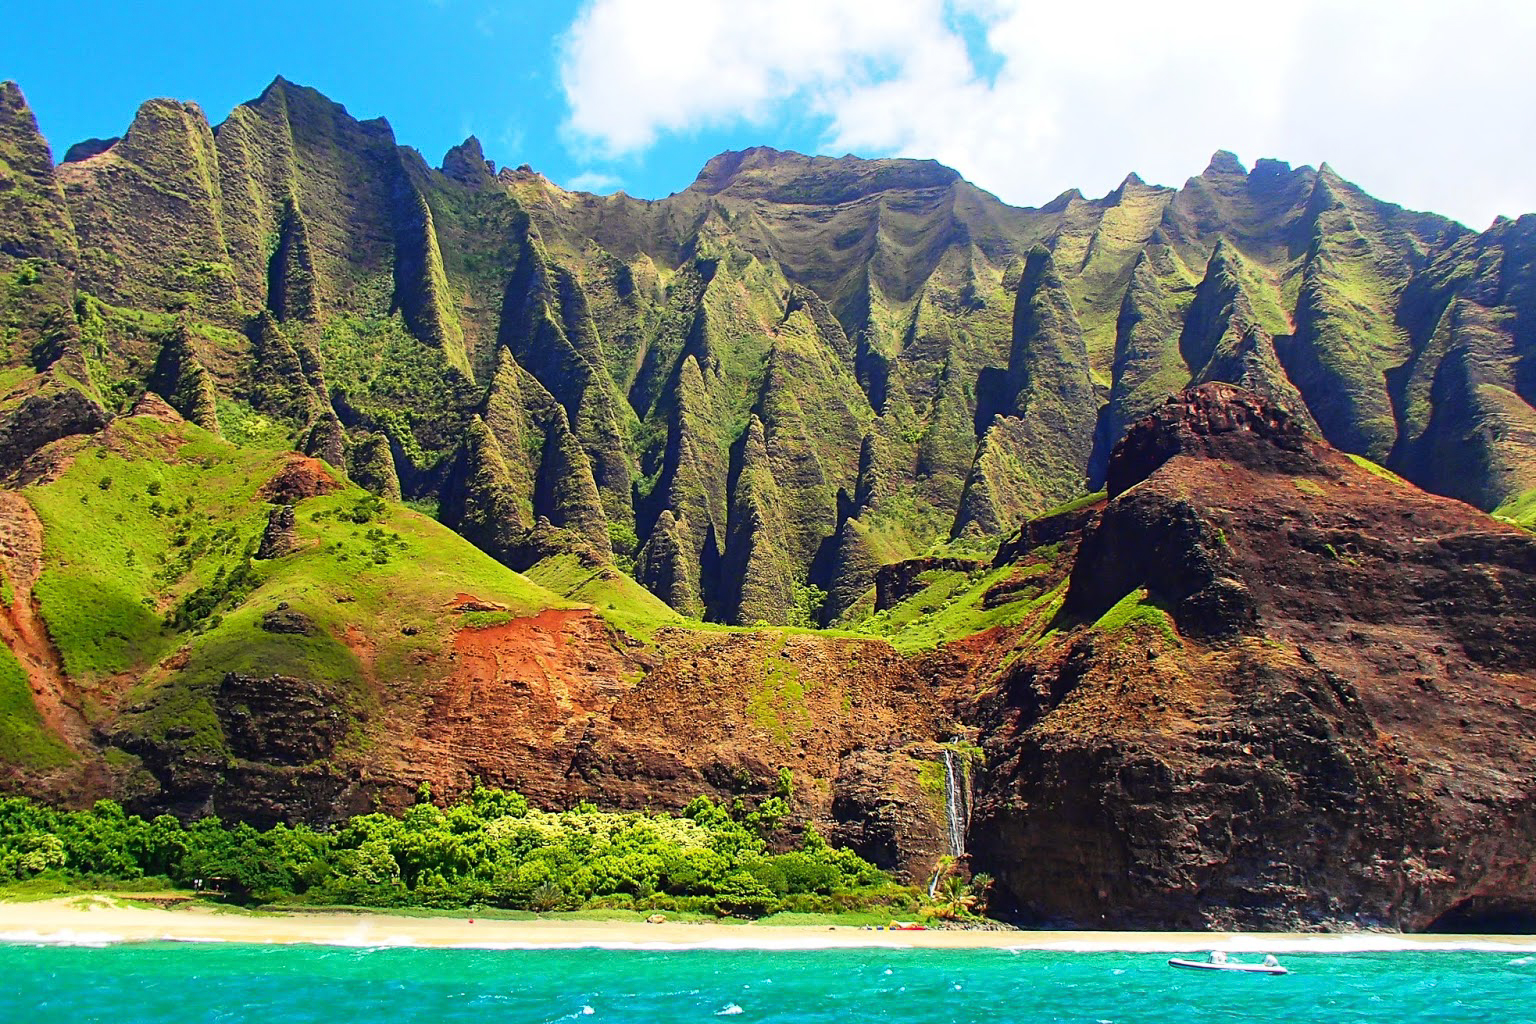 NA PALI COAST STATE WILDERNESS PARK - Nāpali Coast State Wilderness Park lies in the northwest of Kauai Island, Hawaii. It's known for its towering pali, or sea cliffs, punctuated by narrow valleys, streams and cascading waterfalls. The Kalalau Trail is a steep footpath running through the park, between nearby Ke'e Beach and sandy Kalalau Beach. It cuts through 5 valleys, including the Hanakoa Valley, with its native plants and old agricultural terraces.